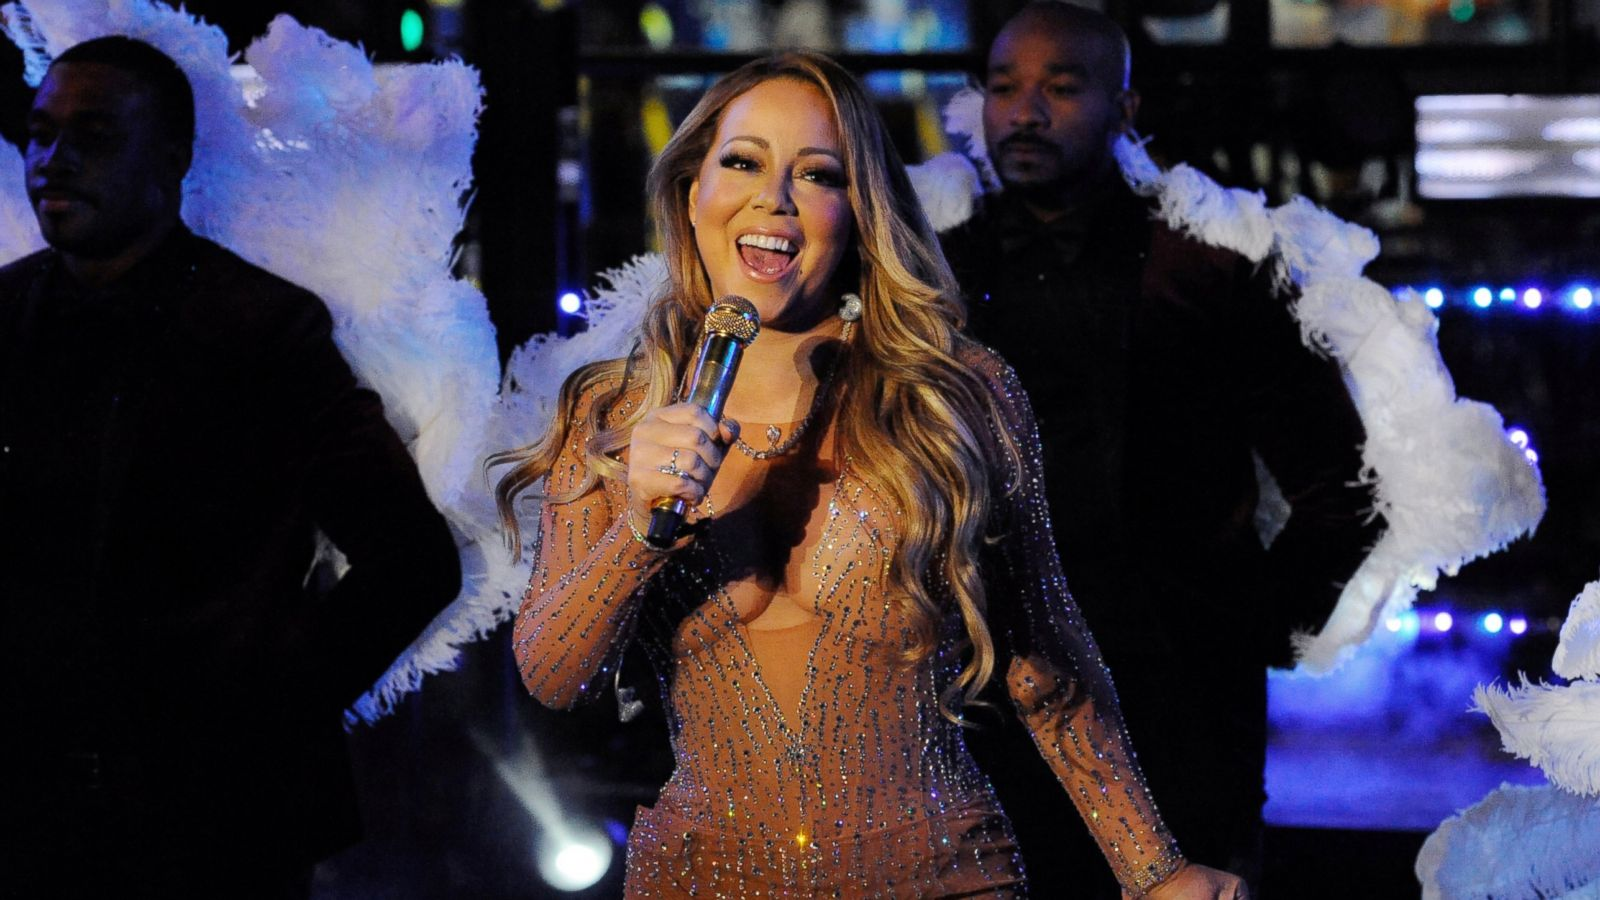 Mariah Carey sues her personal assistant for alleged blackmail